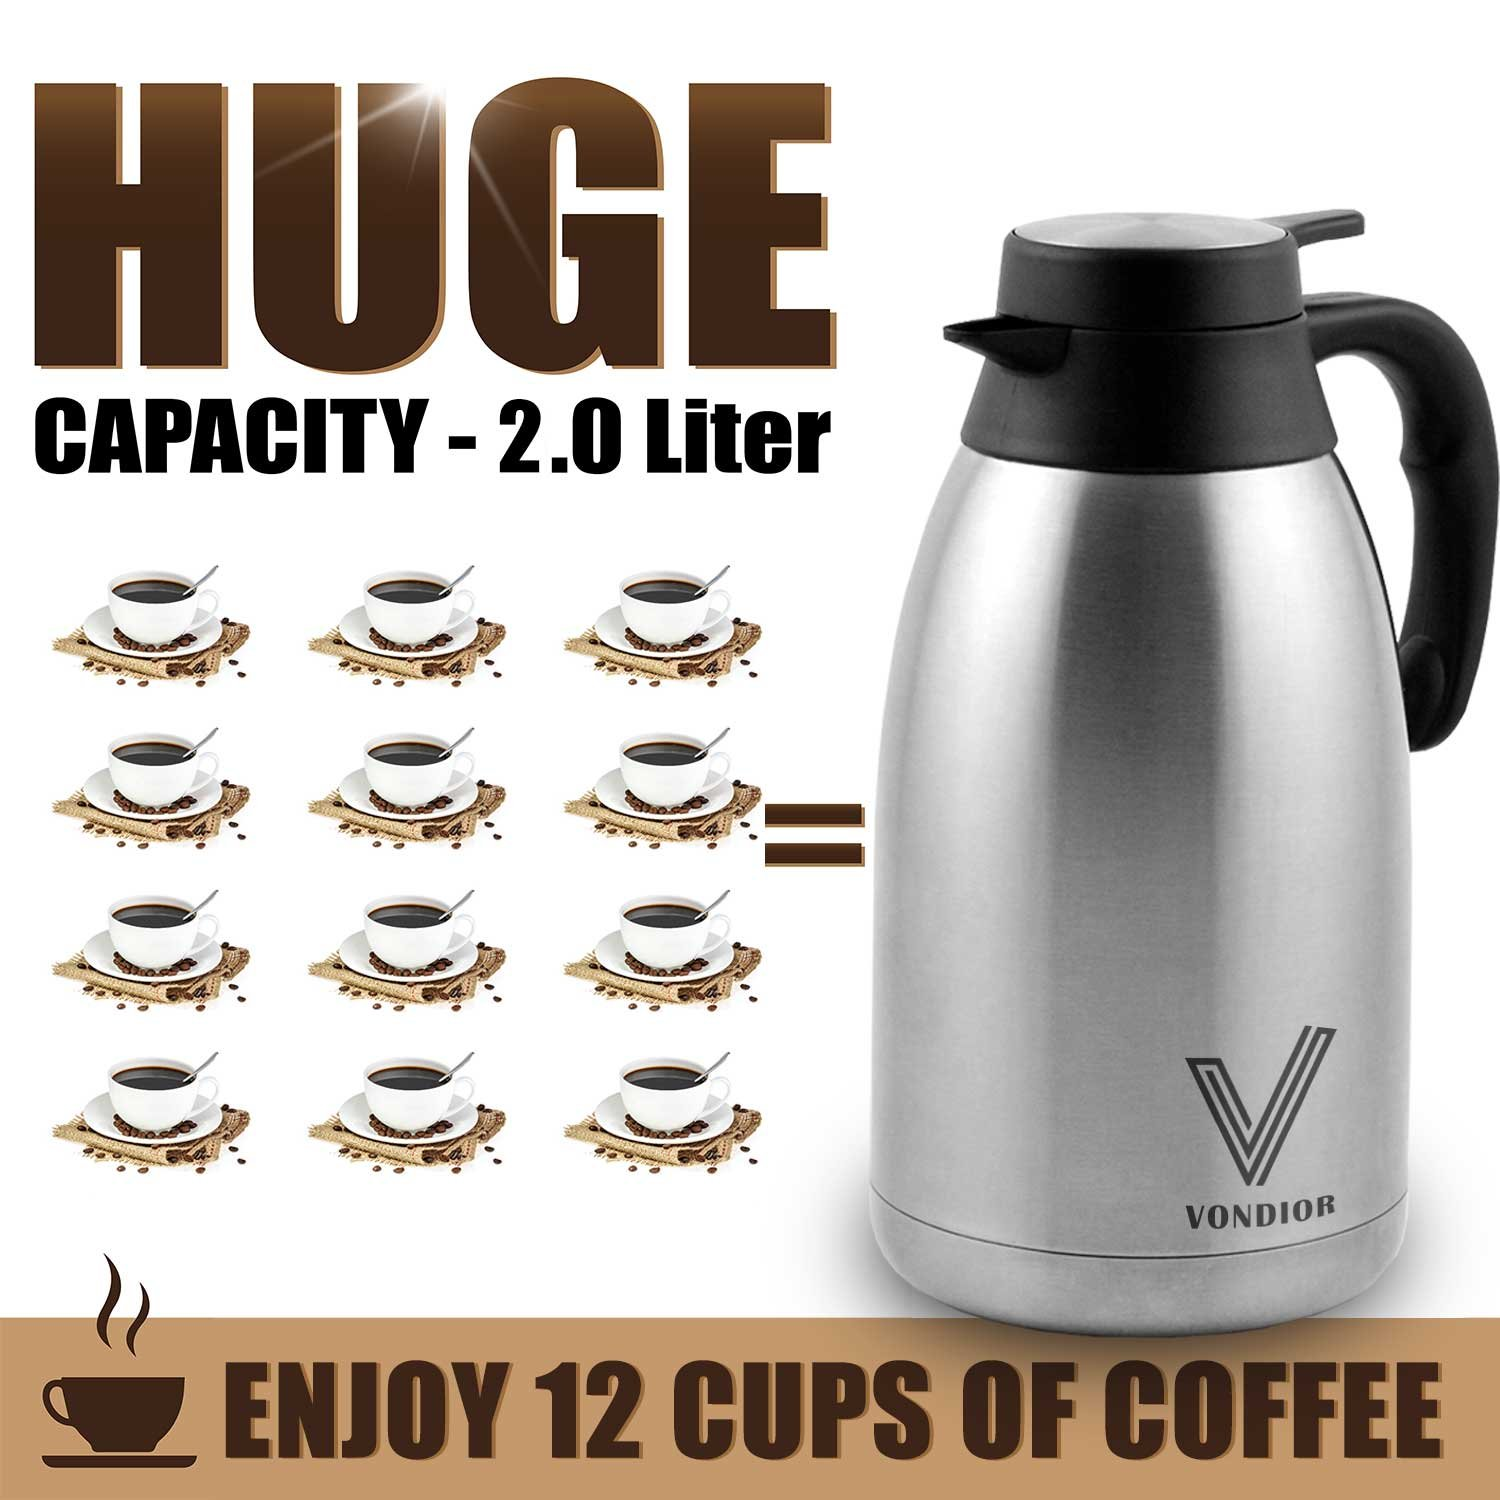 Coffee Thermal Carafe (68 Oz) + Free Brush - Large stainless steel thermos carafes, Keep water hot up to 12 Hours, double walled insulated vacuum flask, Beverage Dispenser By Vondior by Vondior (Image #6)